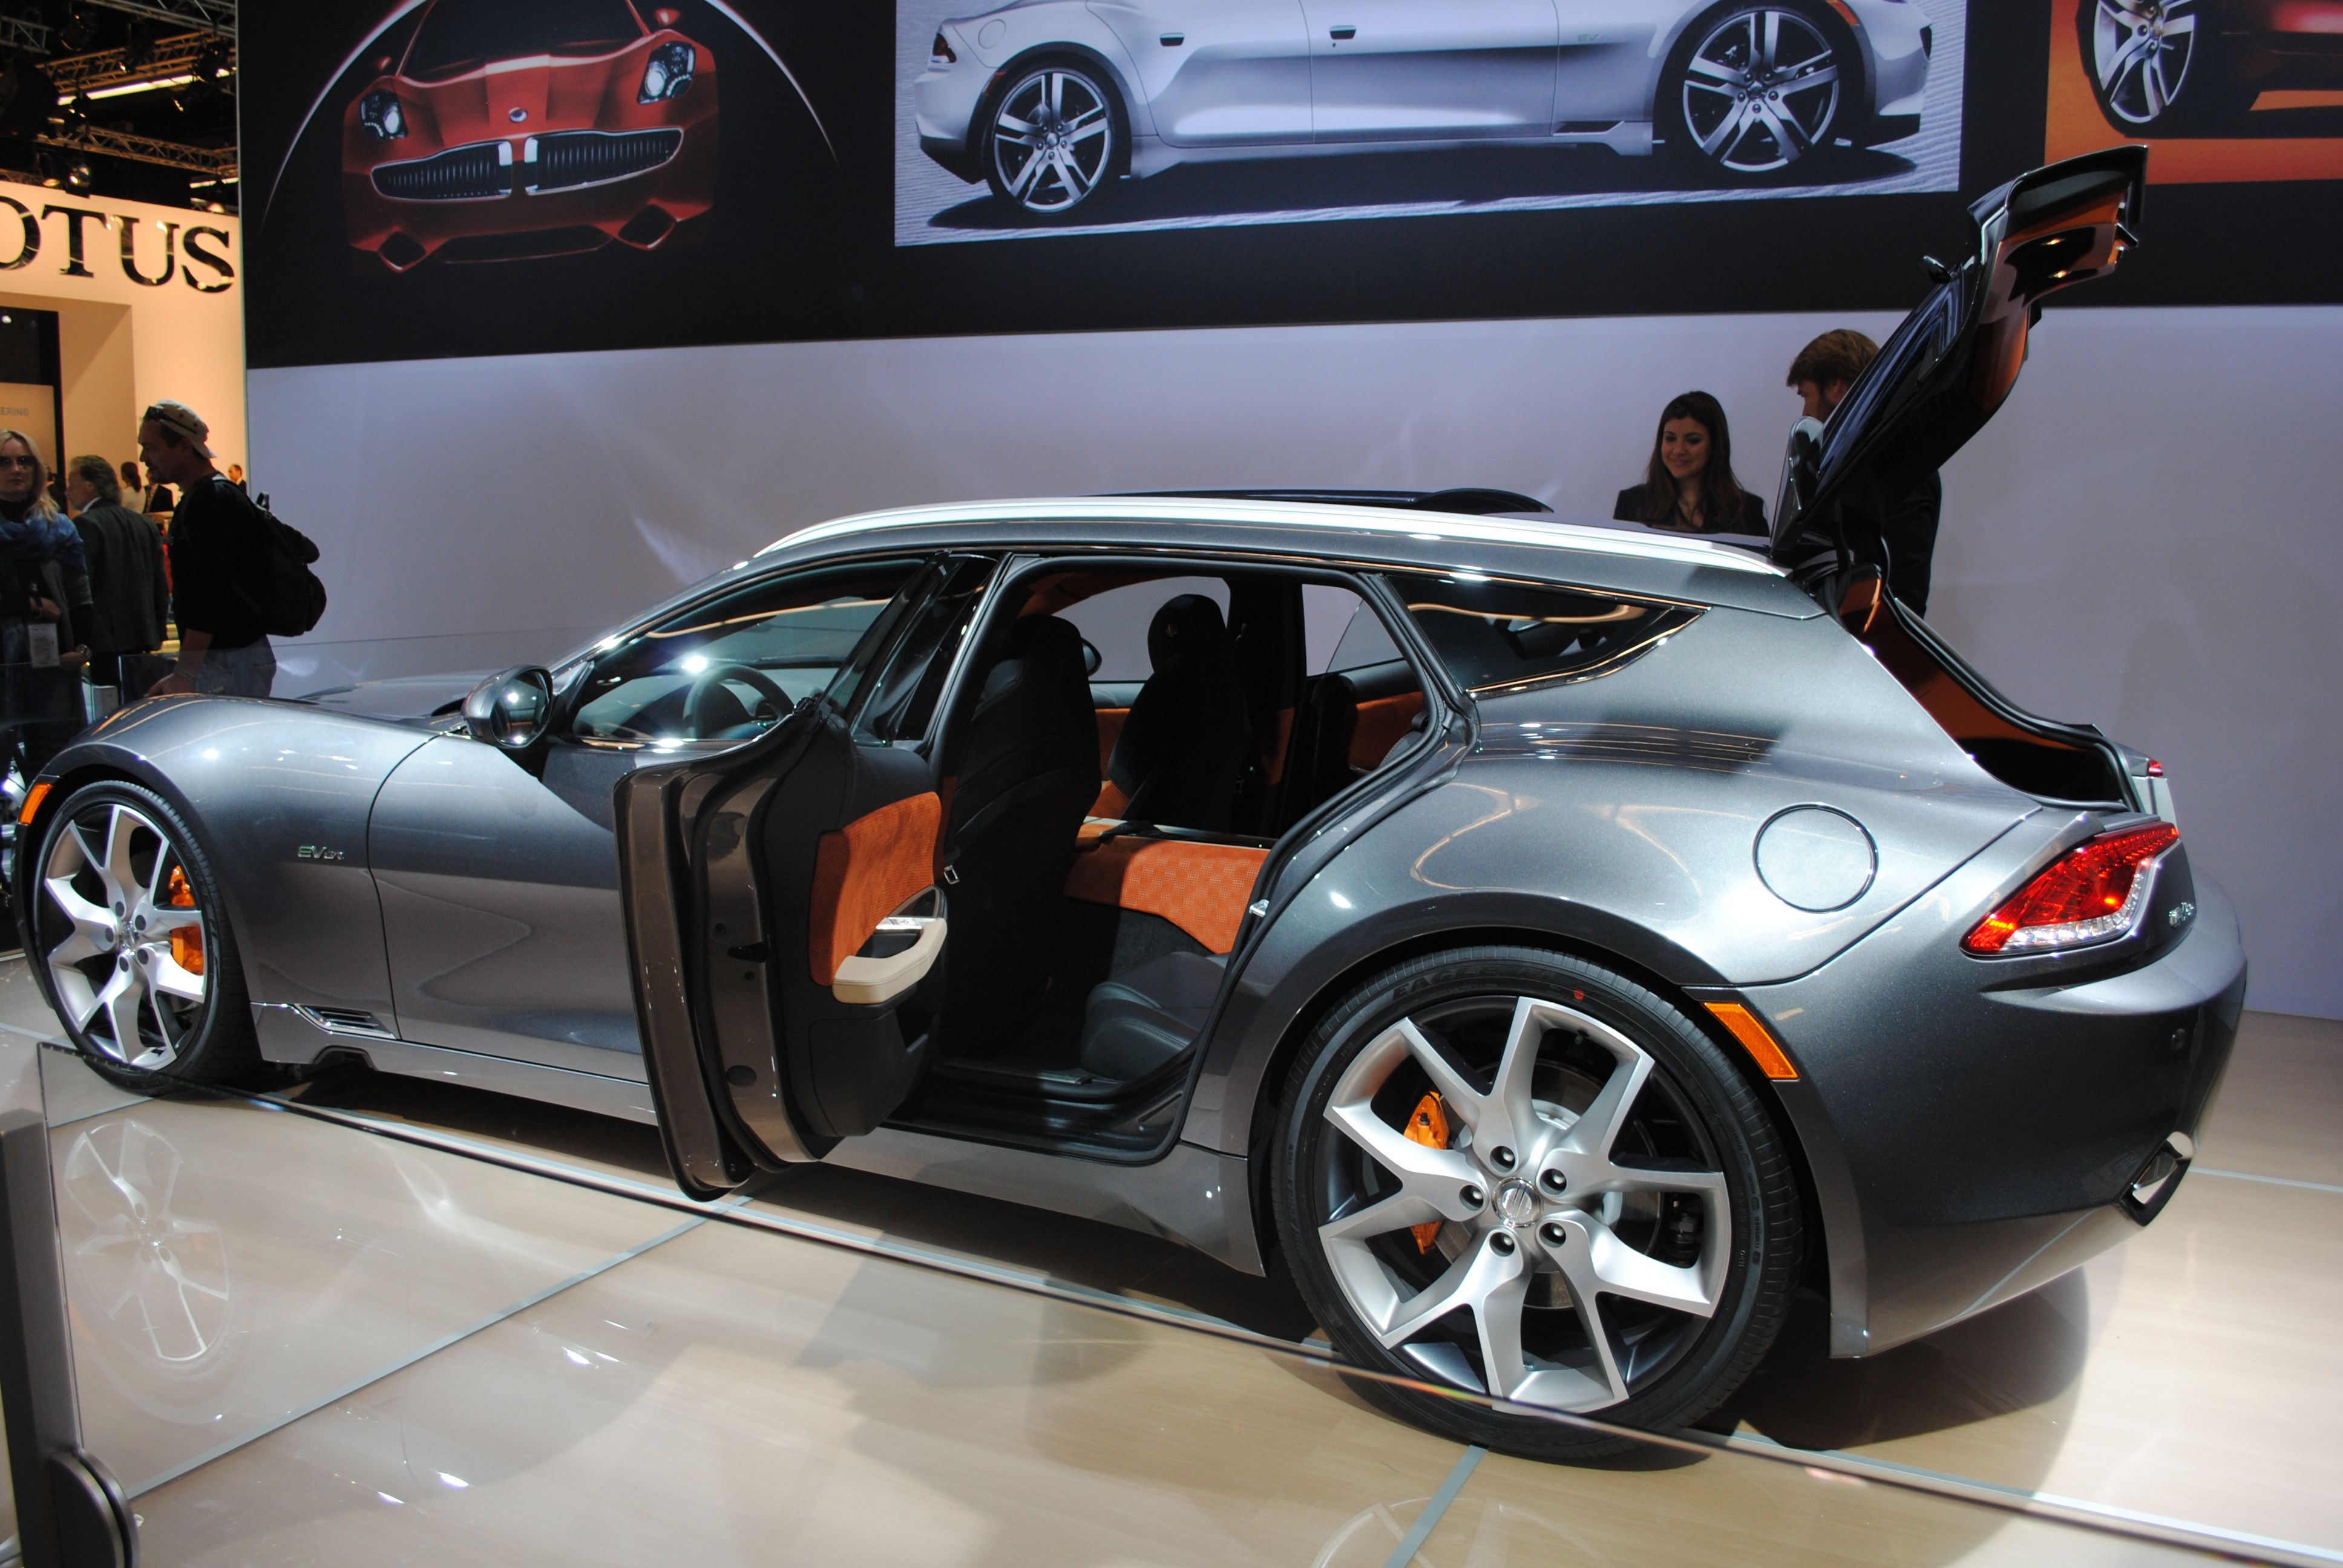 I Absolutely Love This Car Fisker Karma S Sunset Lelookparfait Driveinstyle Lecarparfait Theperfectcar Dream Cars Car Collection My Dream Car